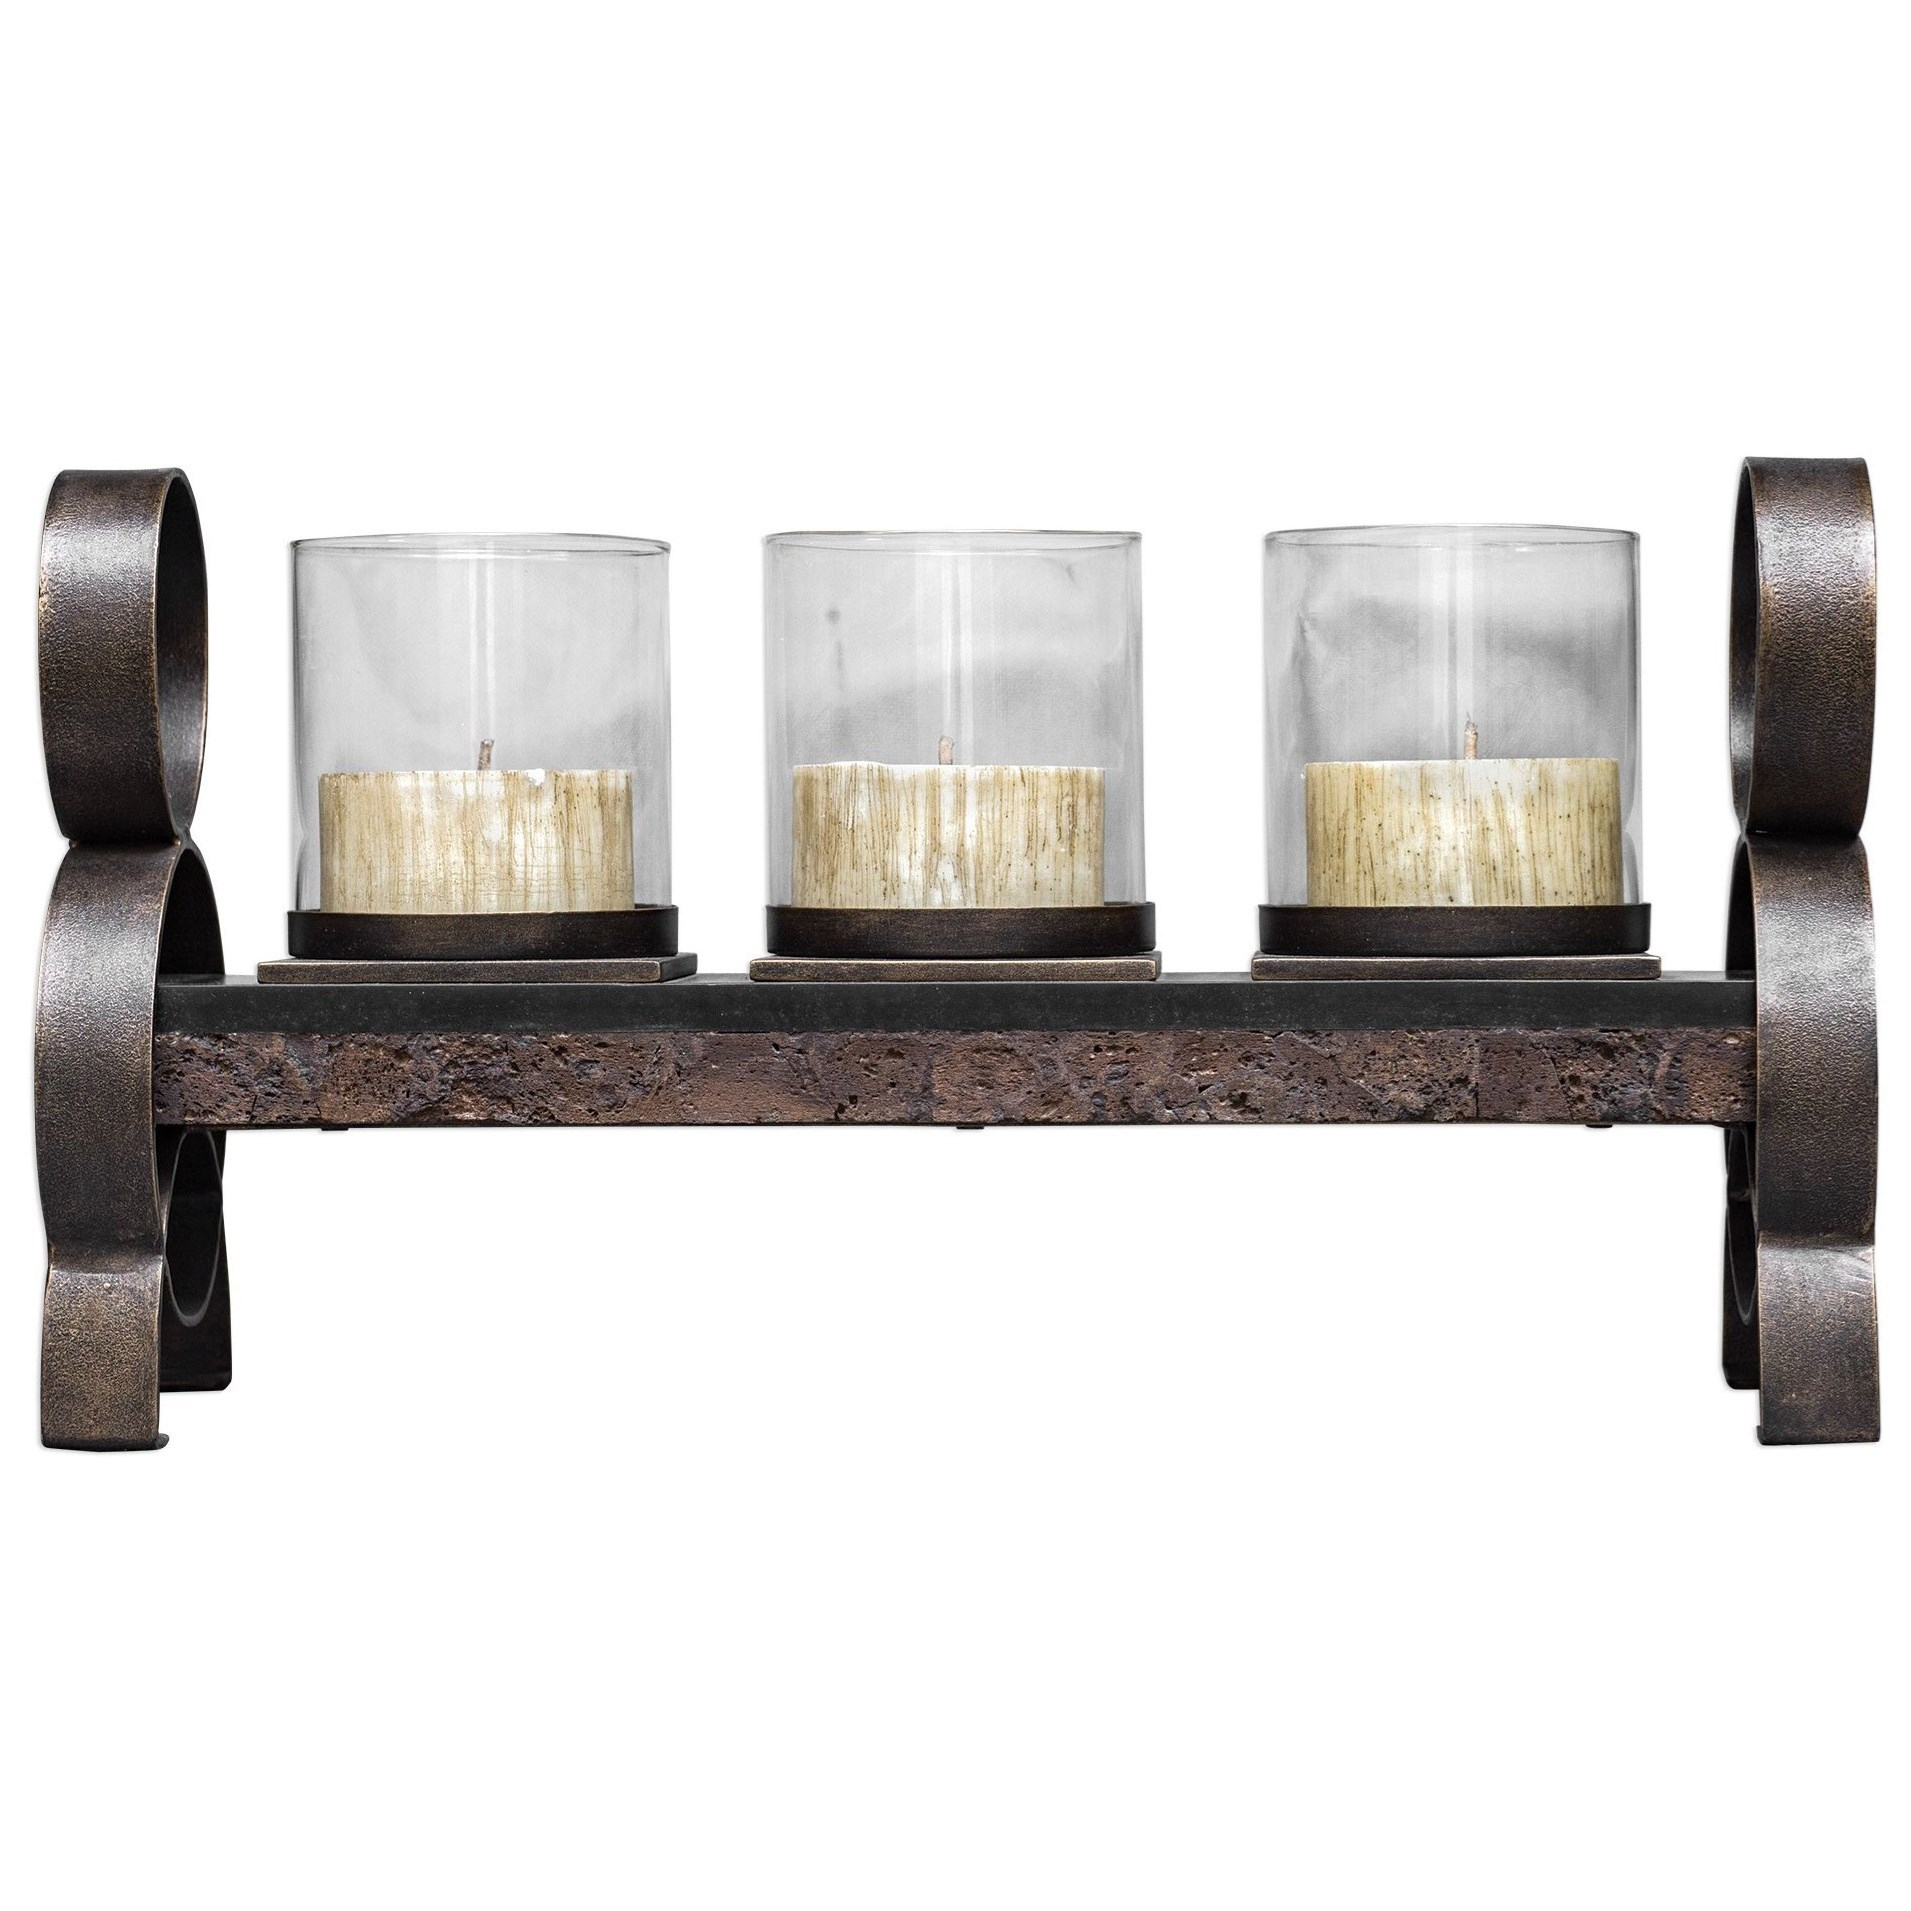 Accessories - Candle Holders Mila Antique Bronze Candleholder by Uttermost at Suburban Furniture